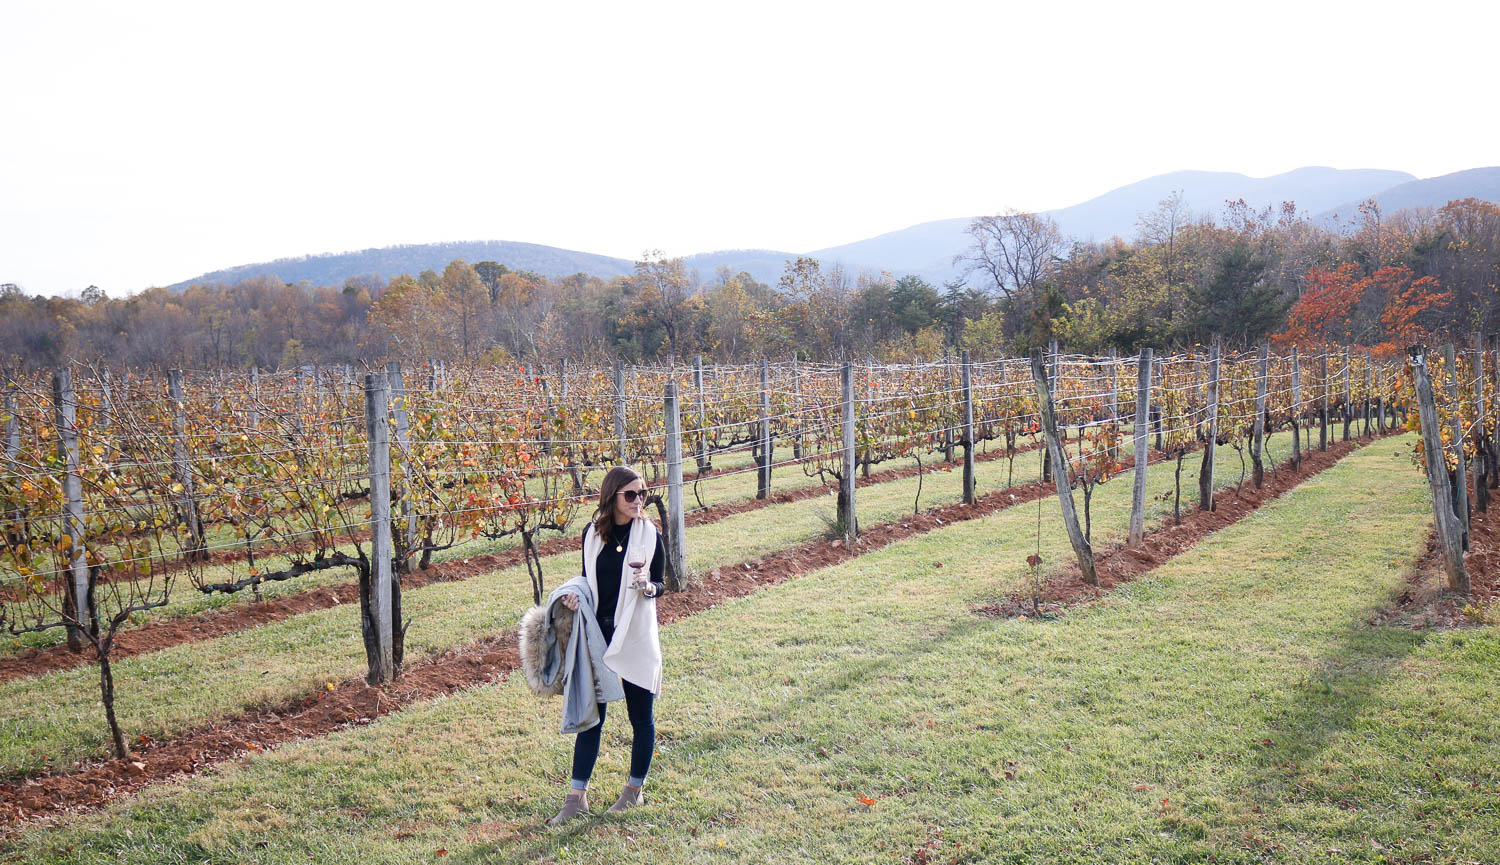 Afton Mountain Vineyards | Charlottesville, Virginia Weekend Guide | Cobalt Chronicles